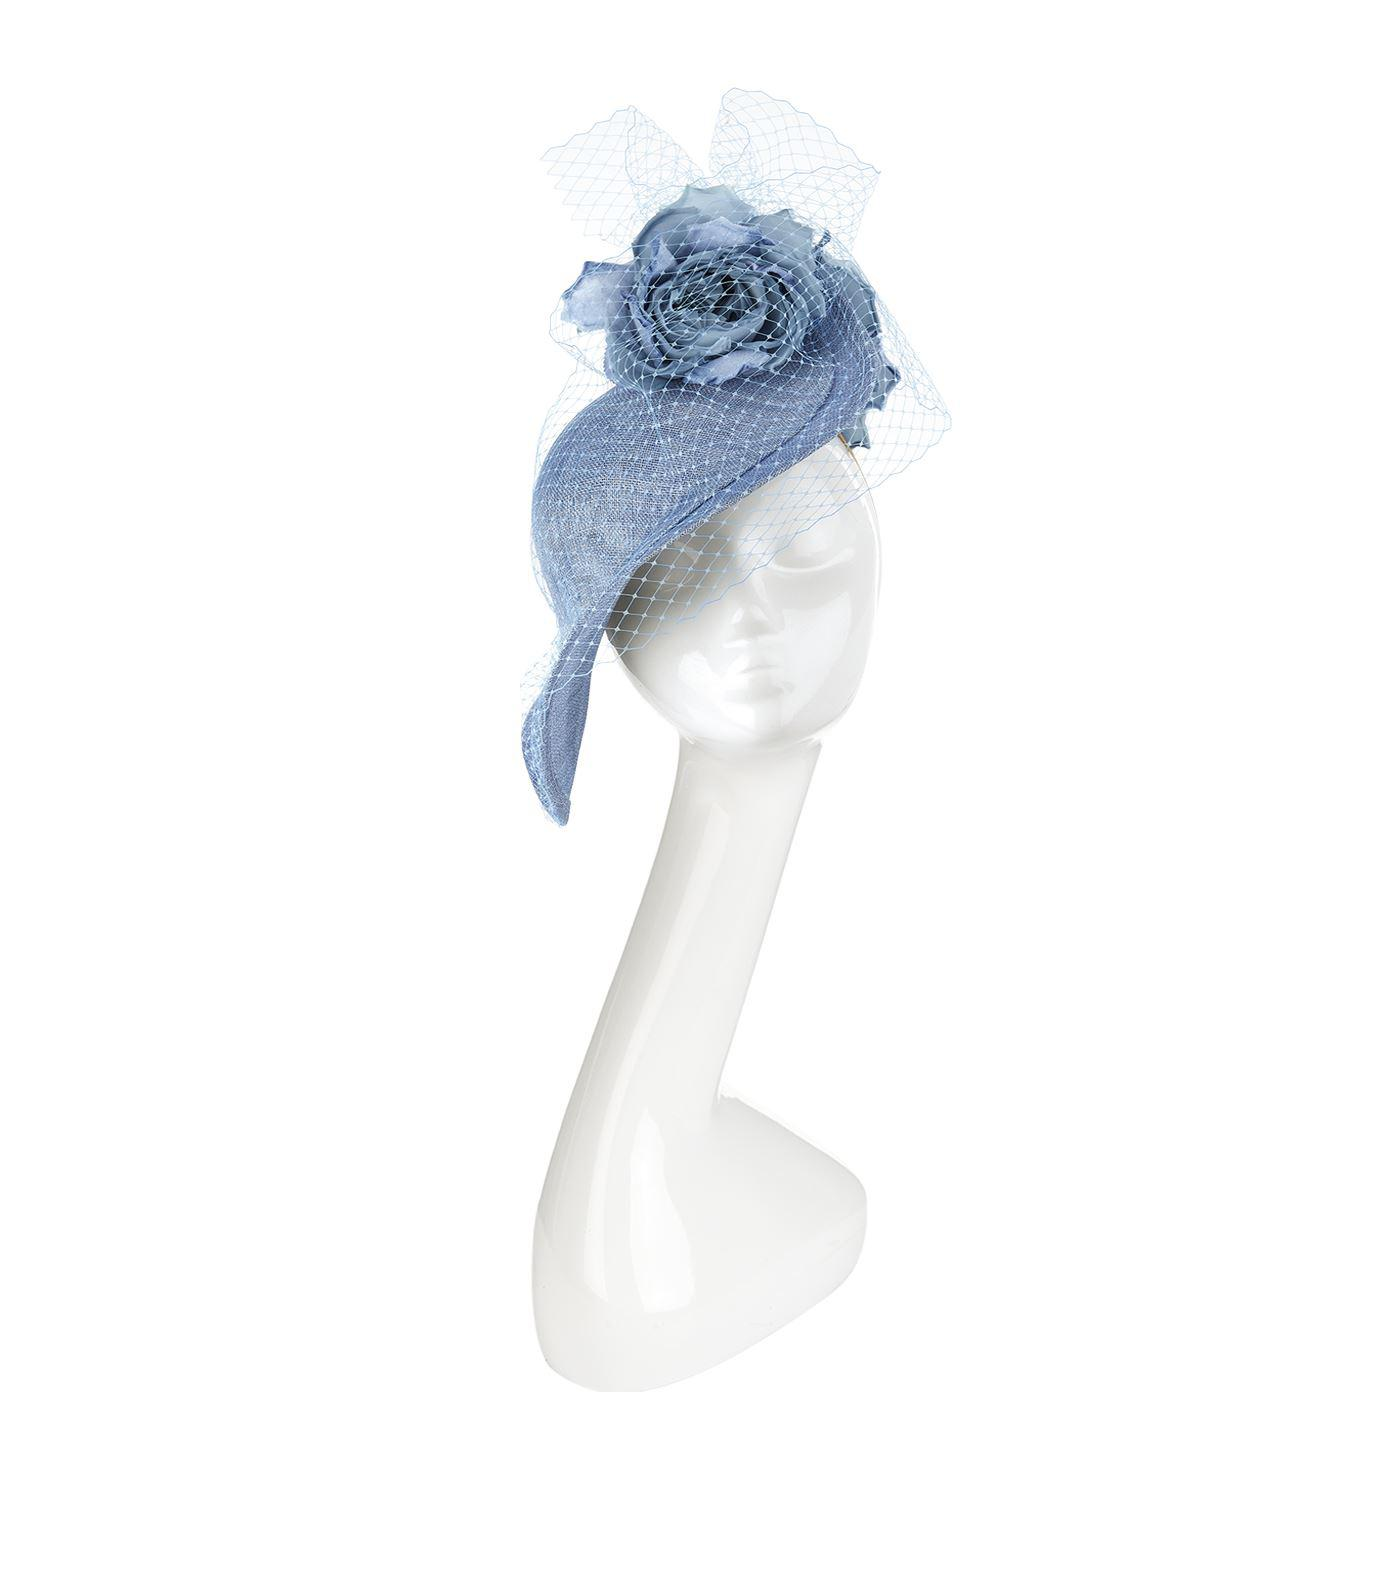 Lyst - Philip Treacy Floral Mesh Asymmetric Headpiece in Blue d65b1e77d336